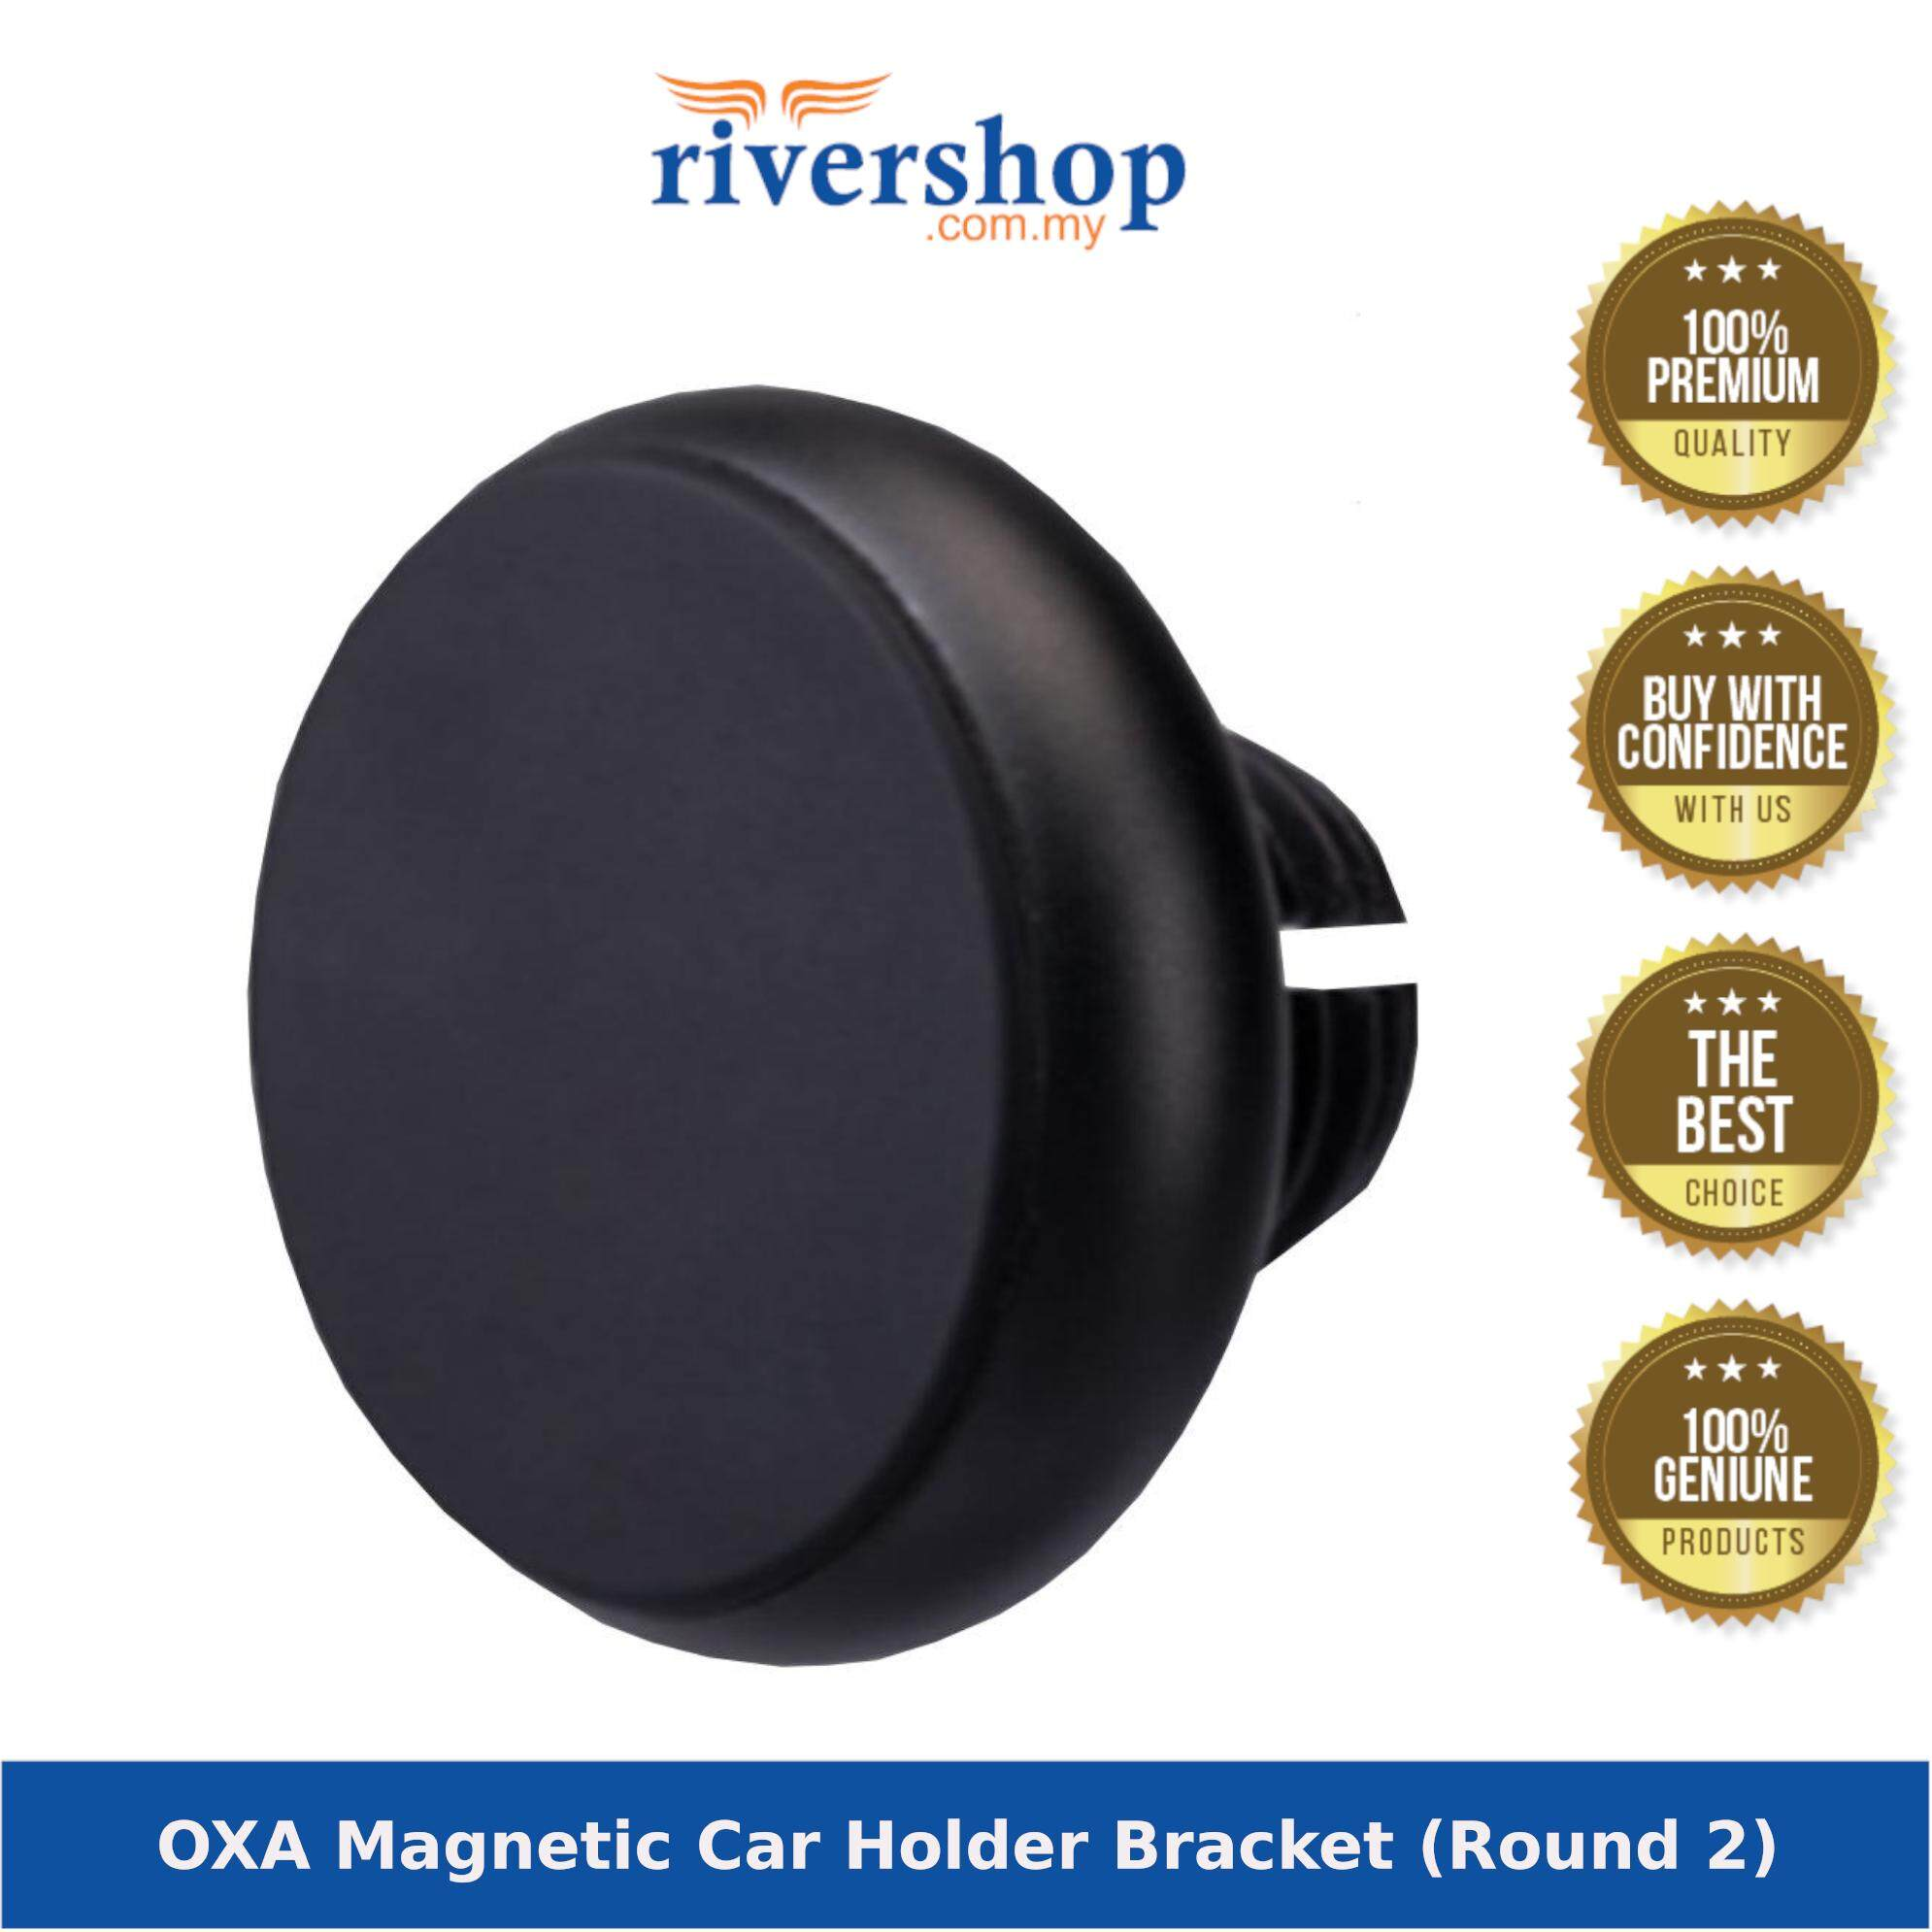 OXA Magnetic Car Holder Bracket (Round 2)